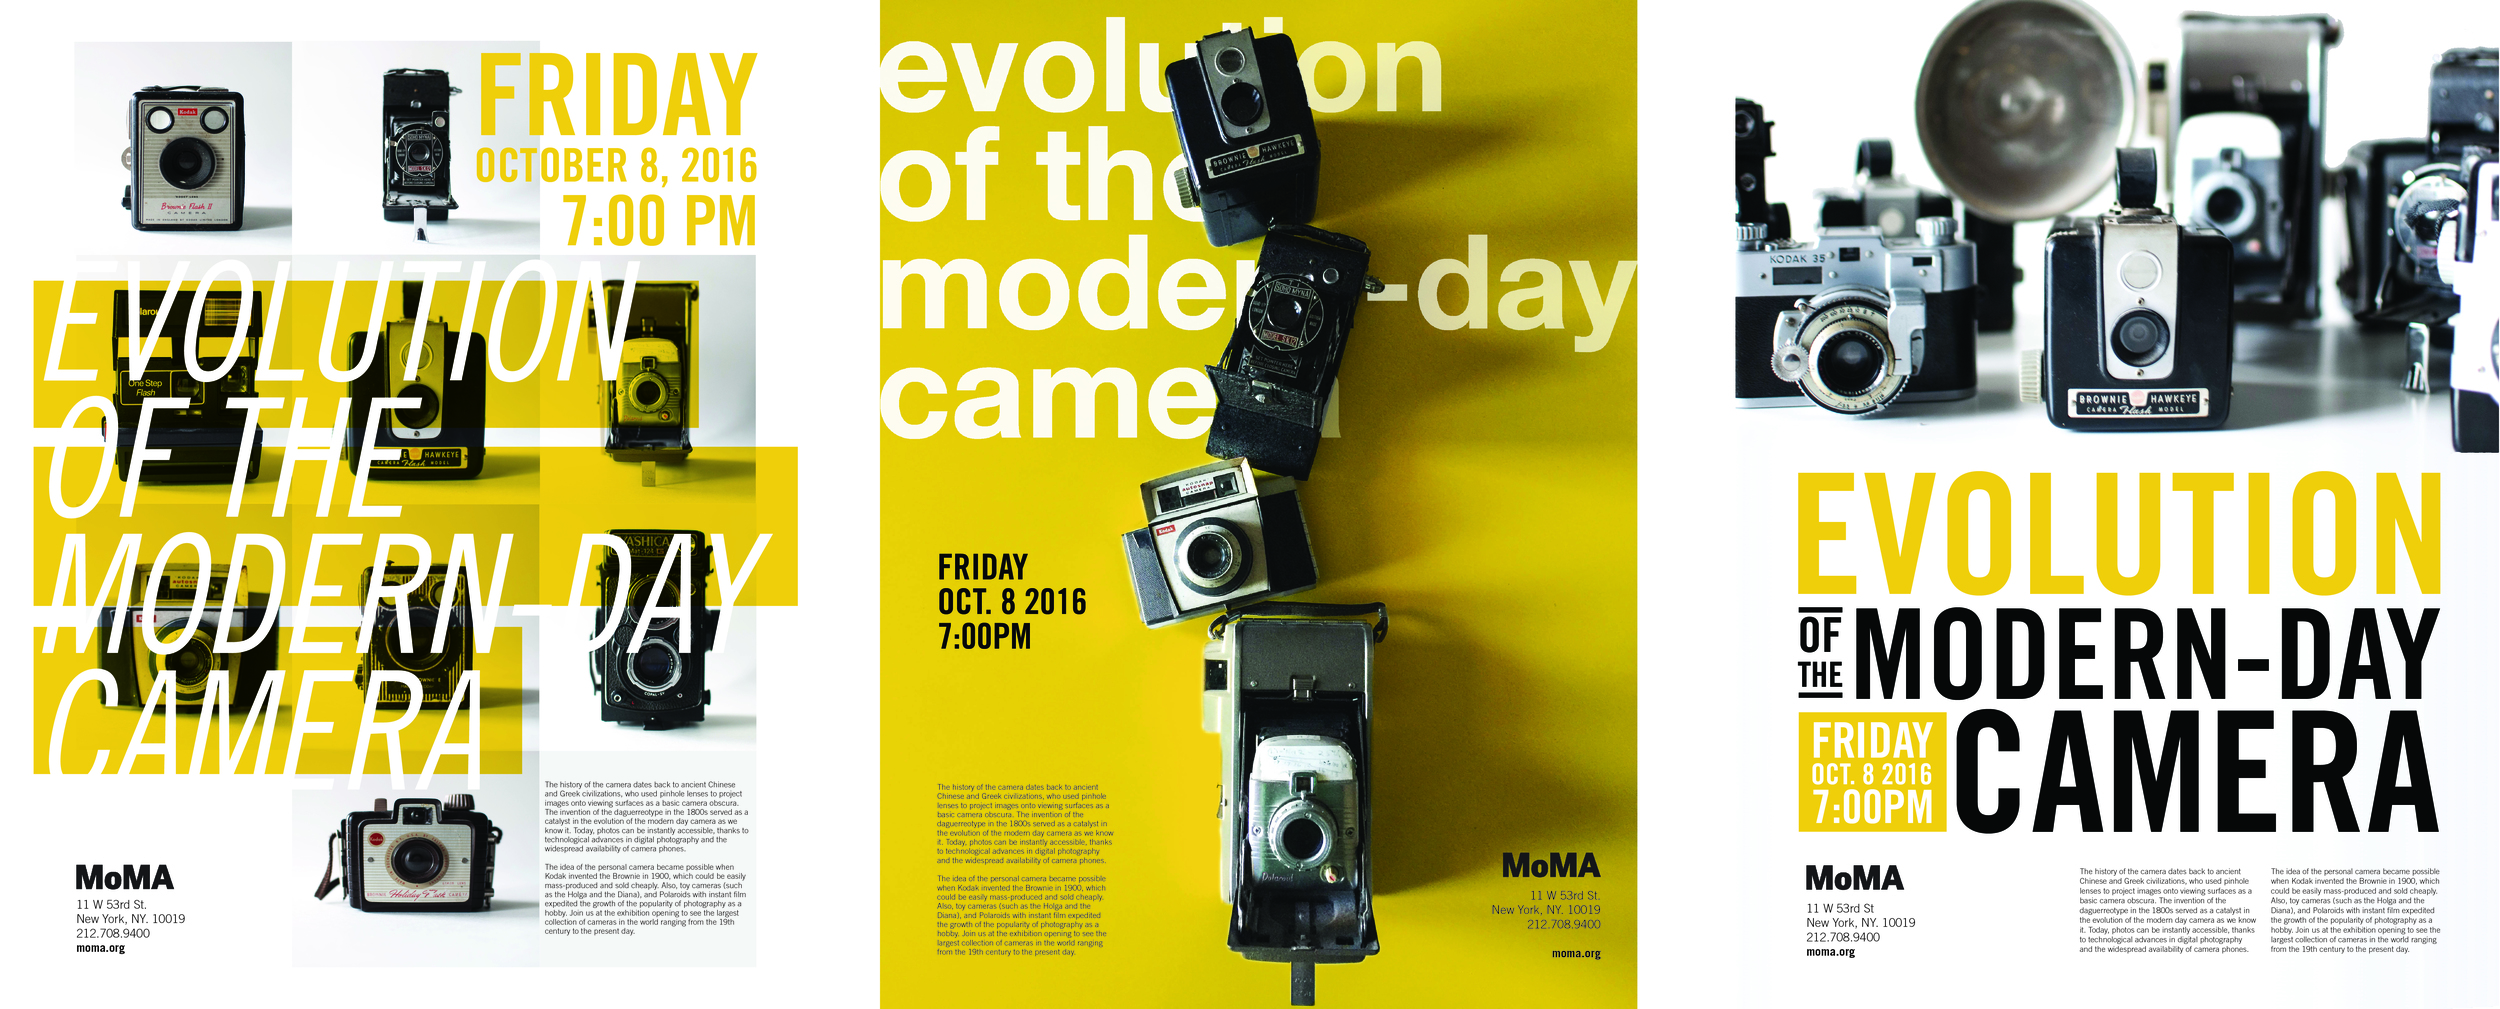 MoMA exhibition poster series.